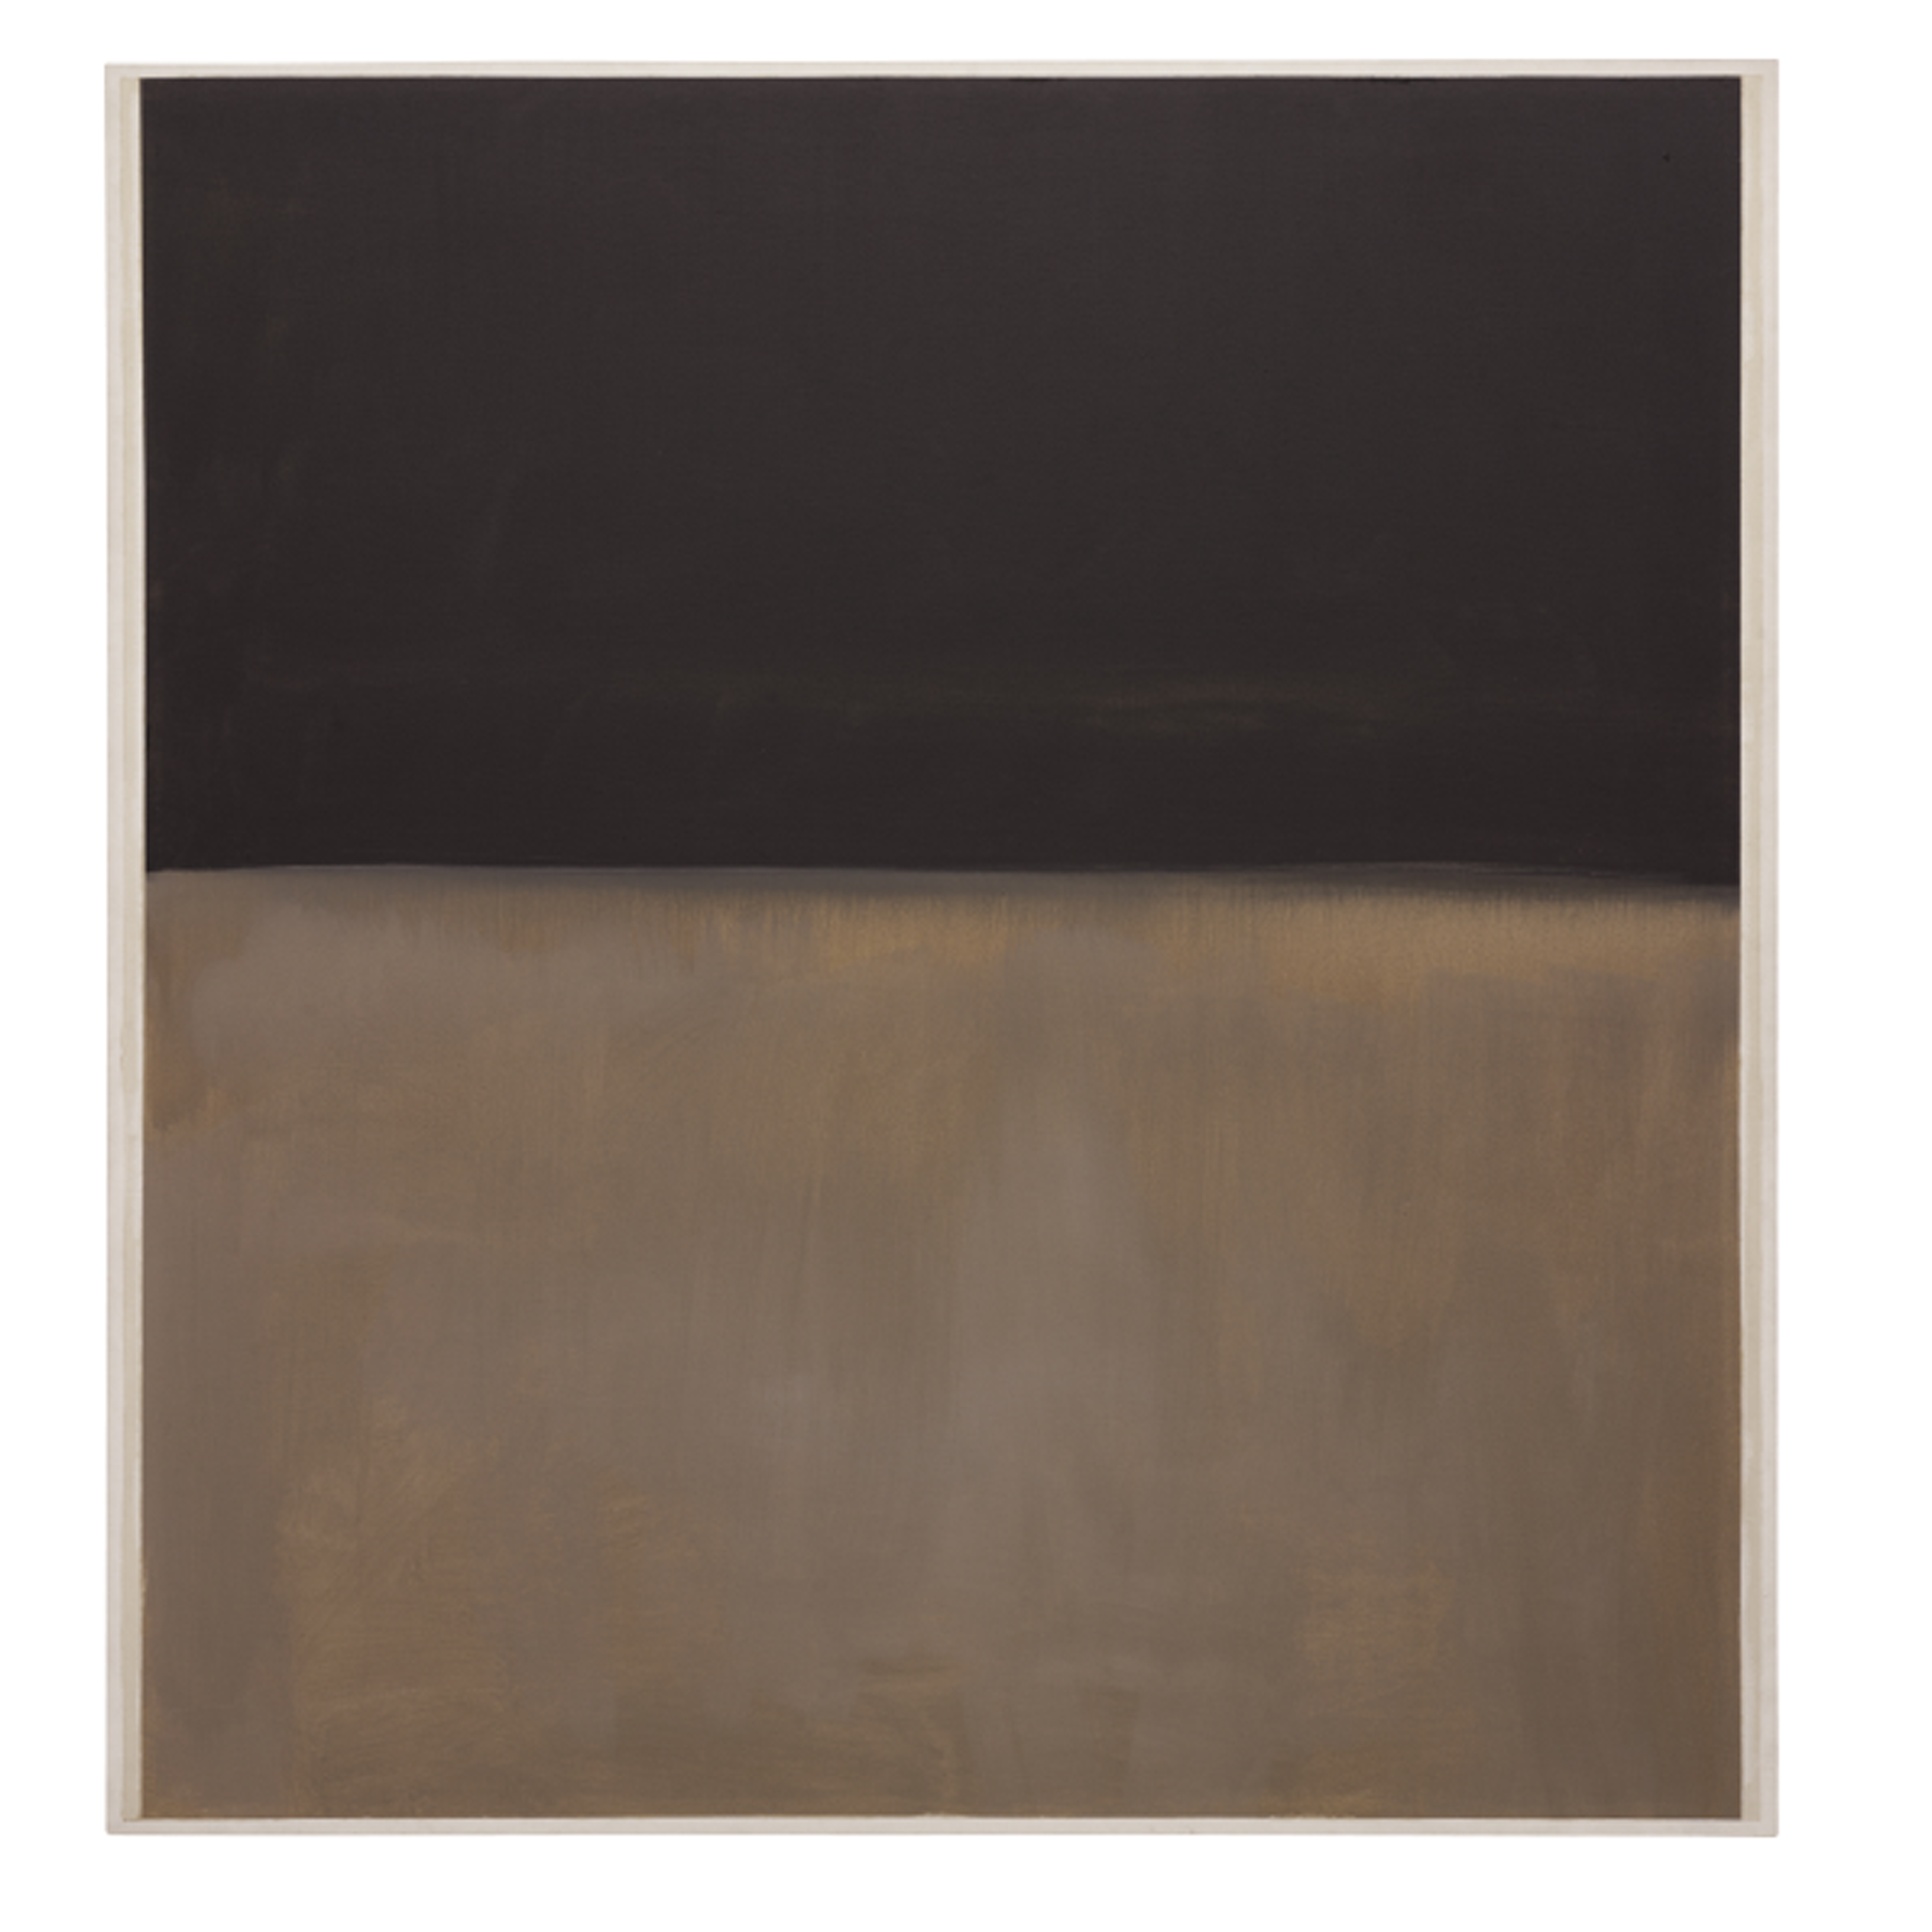 MARK ROTHKO Untitled (Black on Gray), 1969-70 acrylic on canvas.png